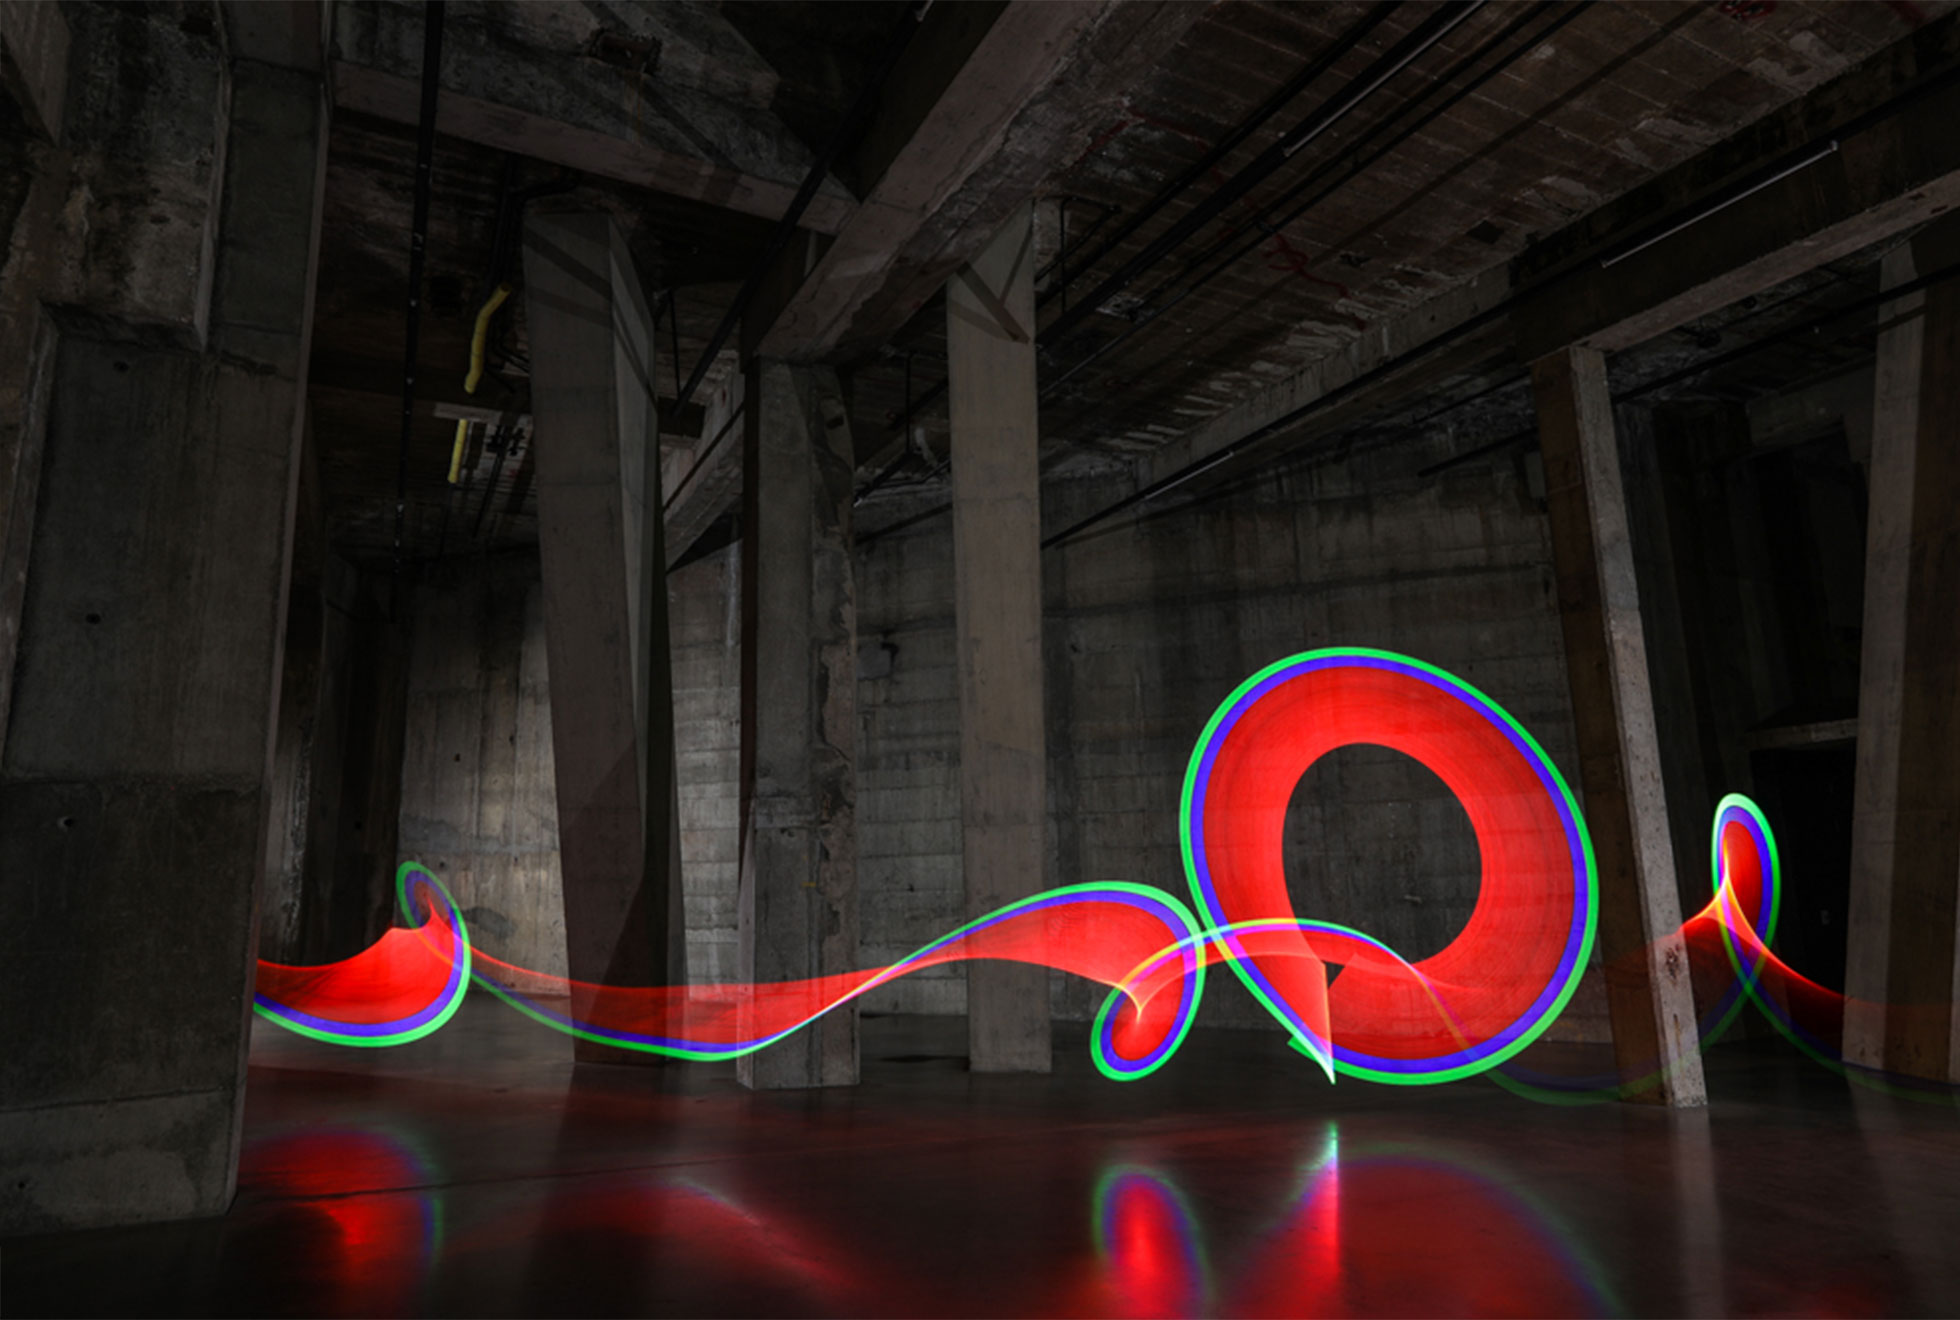 Lenovo-Light-Painting-Backgrounds-by-Sola-Lightbombing-Tate-Modern-2